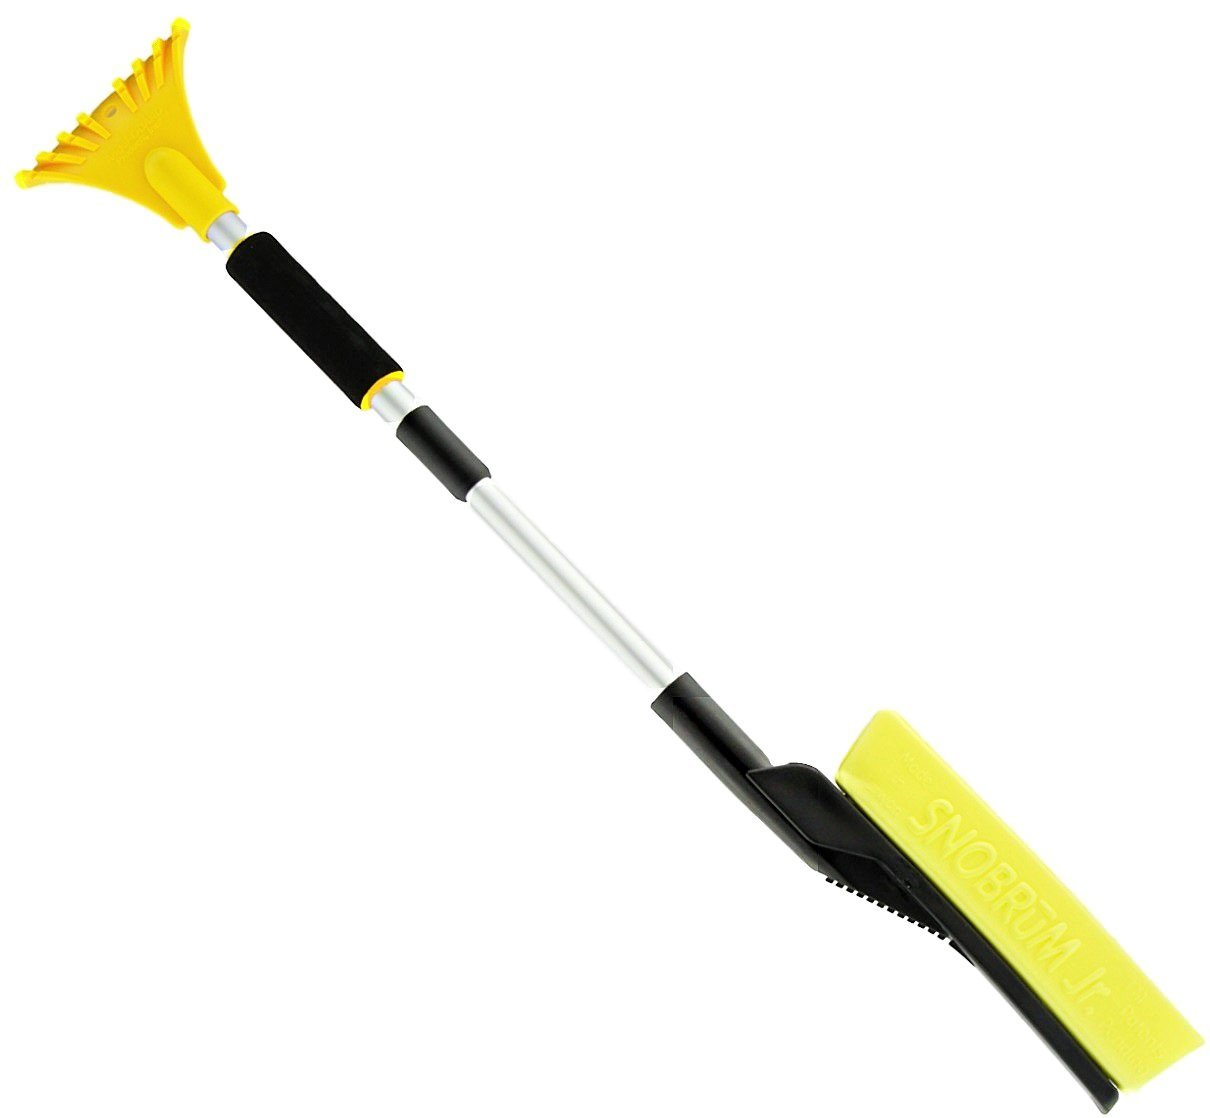 SnoBrum Jr. Snow Removal Tool 27'' to 33.5'' with Extending Handle- Remove snow from vehicles and more without scratching